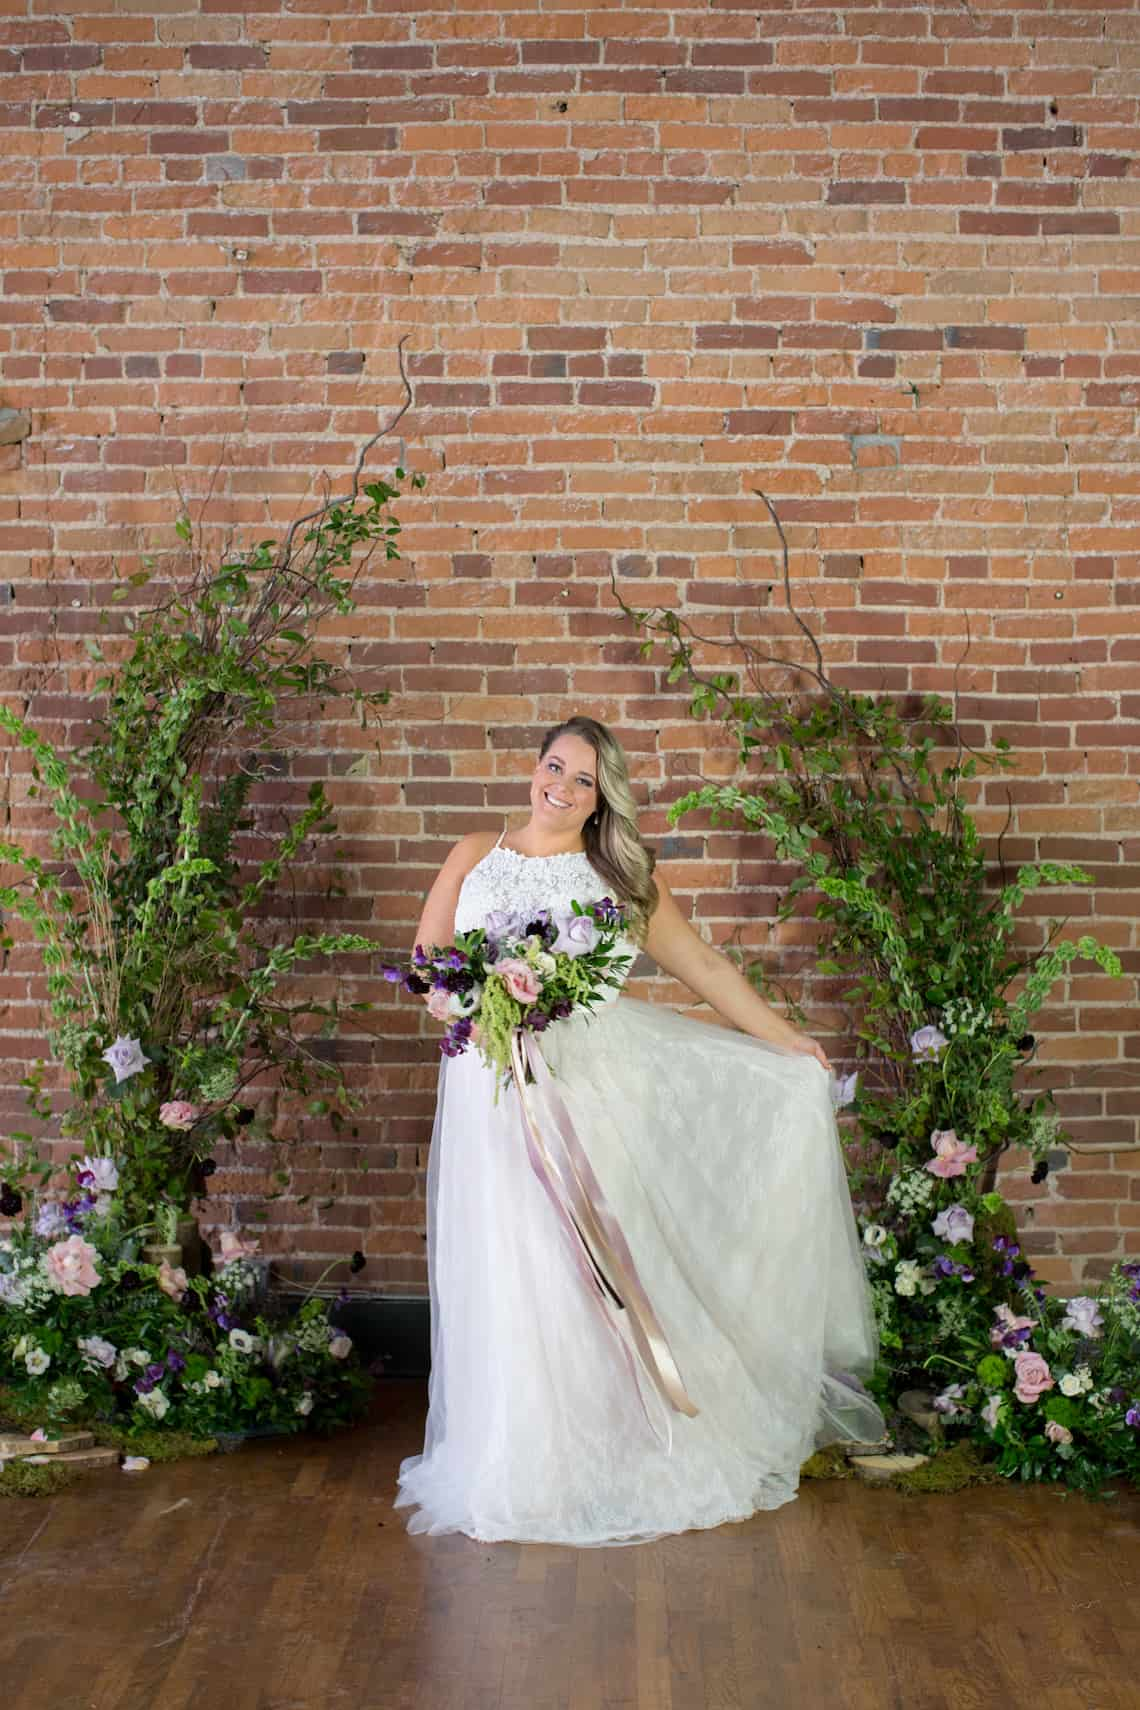 Bride Holding Dress and Bouquet